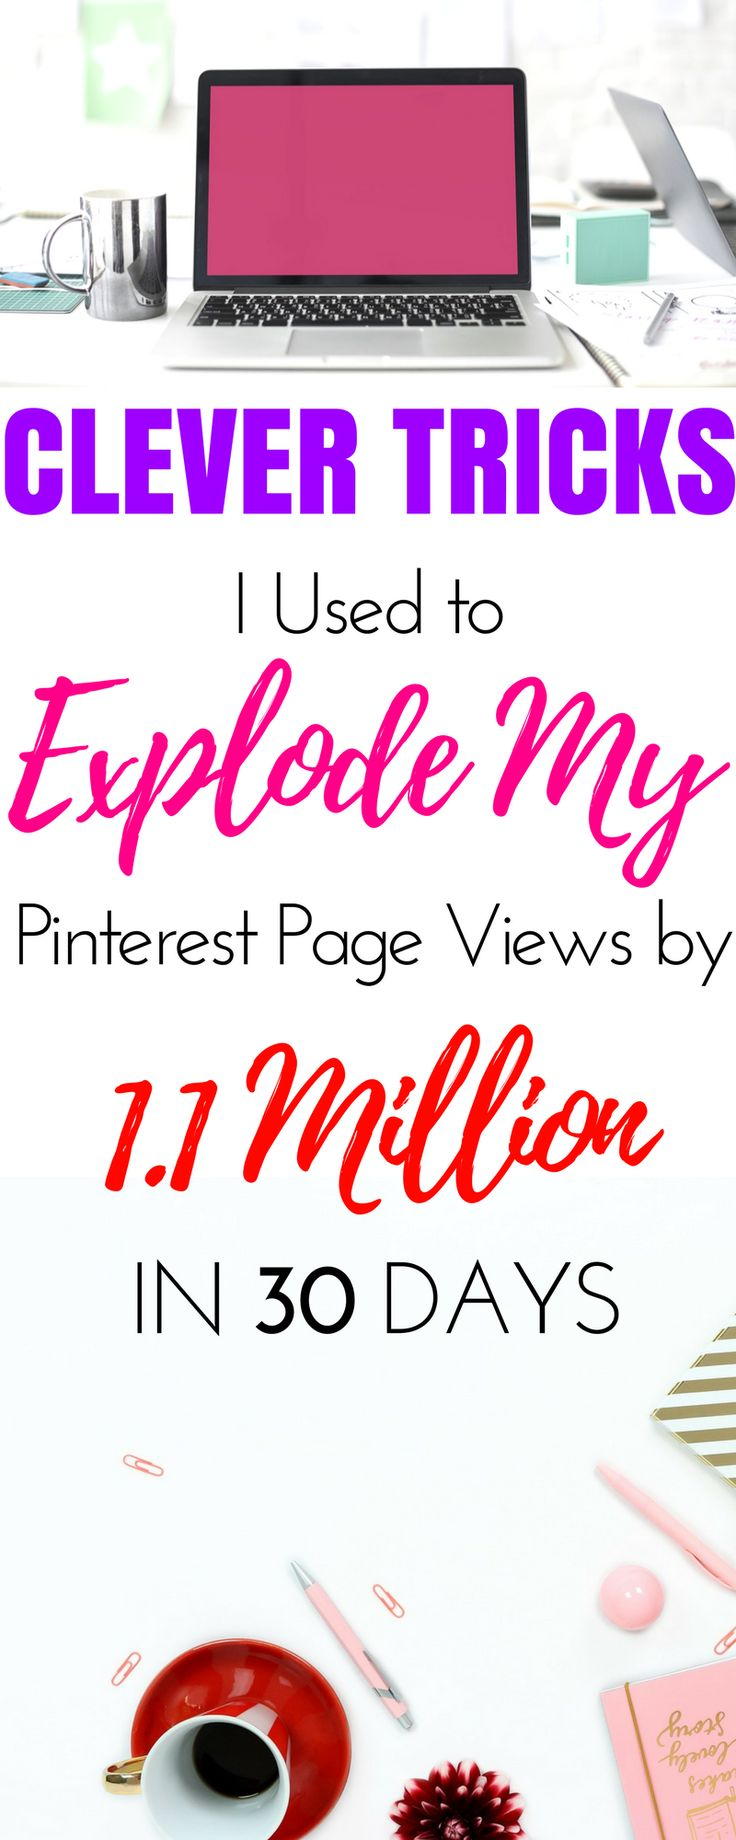 Learn how to use Pinterest for beginners with all the tricks and tips I used to increase my Pinterest page views fast! Quickly learning everything you want to know about tools and ideas to grow your Pinterest reach for business or for blogging. These great ideas for Pinterest strategy will be so helpful for your blog website. #blogging #socialmedia #increasepageviews